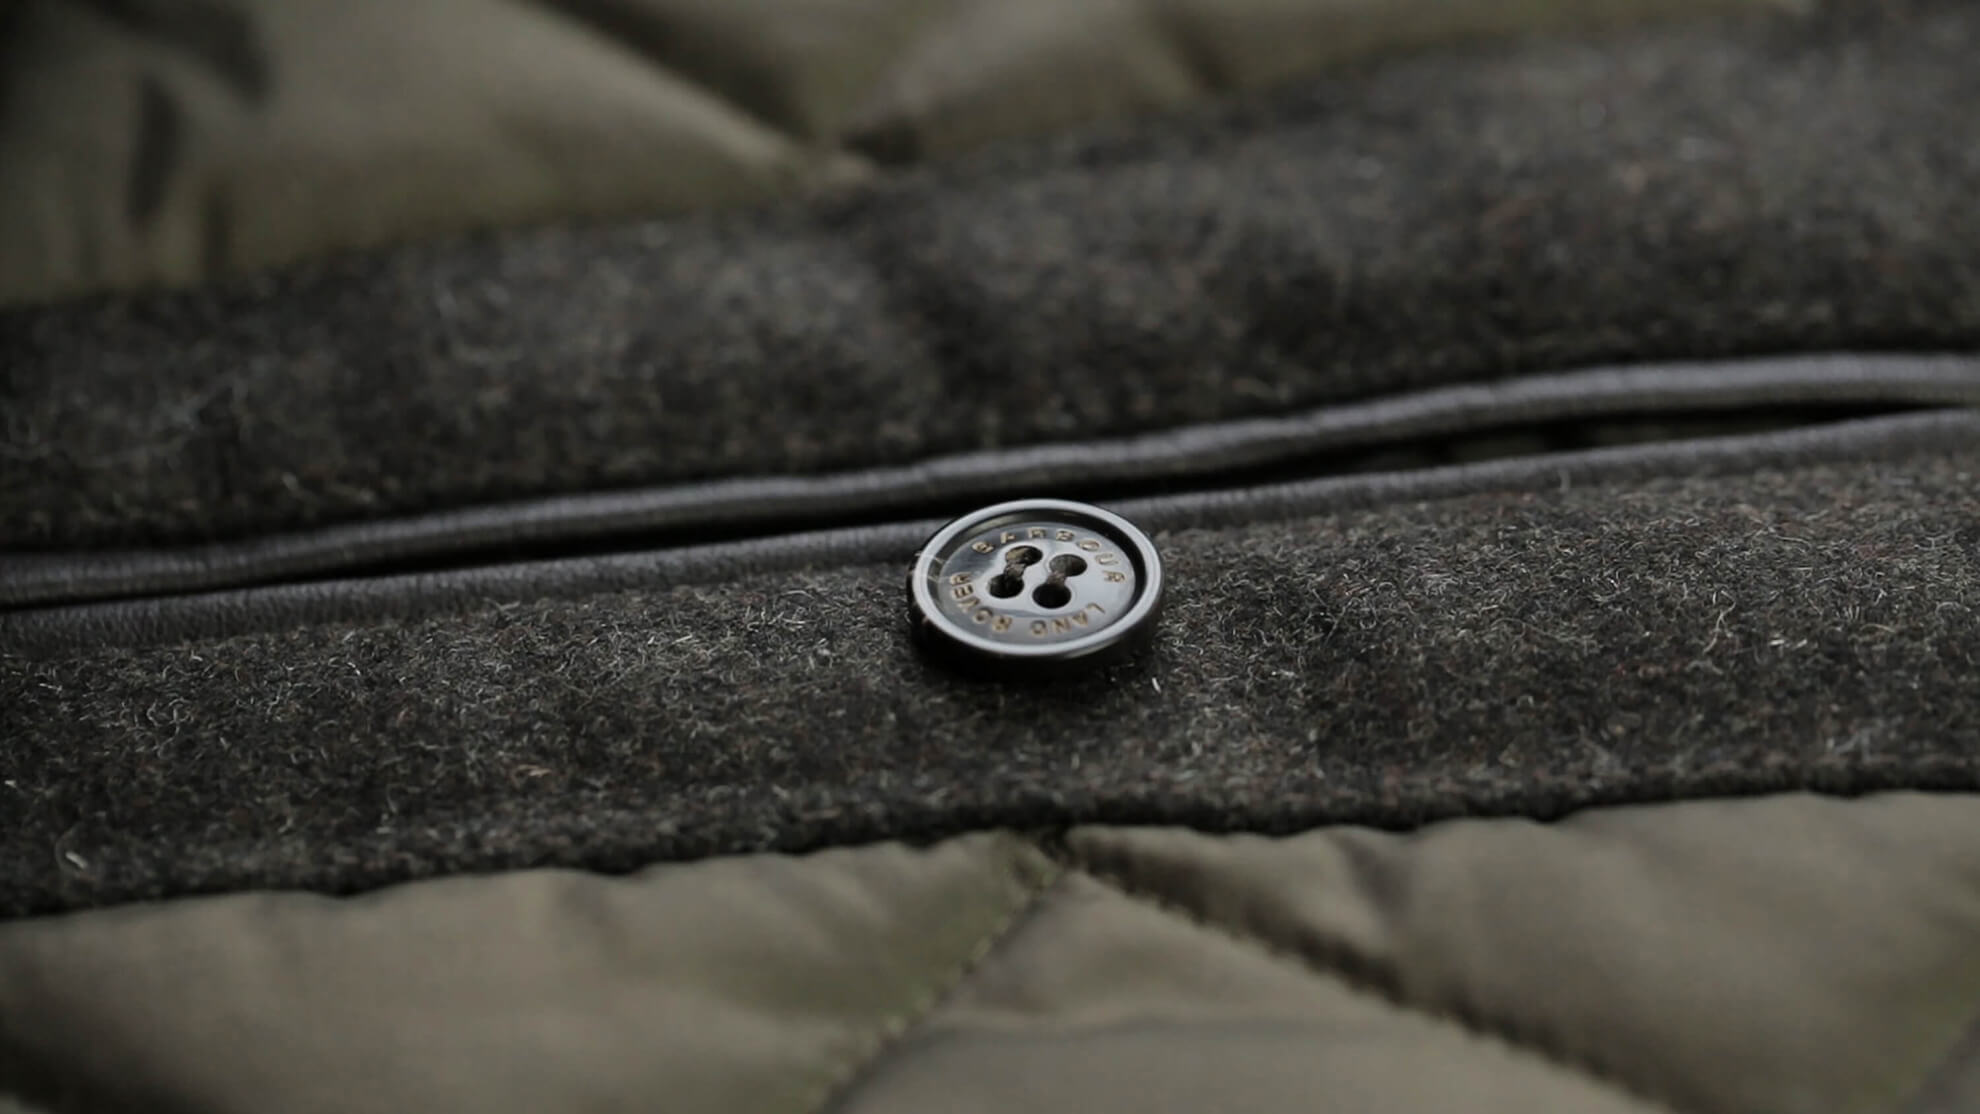 Barbour, Land Rover, Fashion, Collection, England, British, Brand, Agency, Photography, Button, Coat